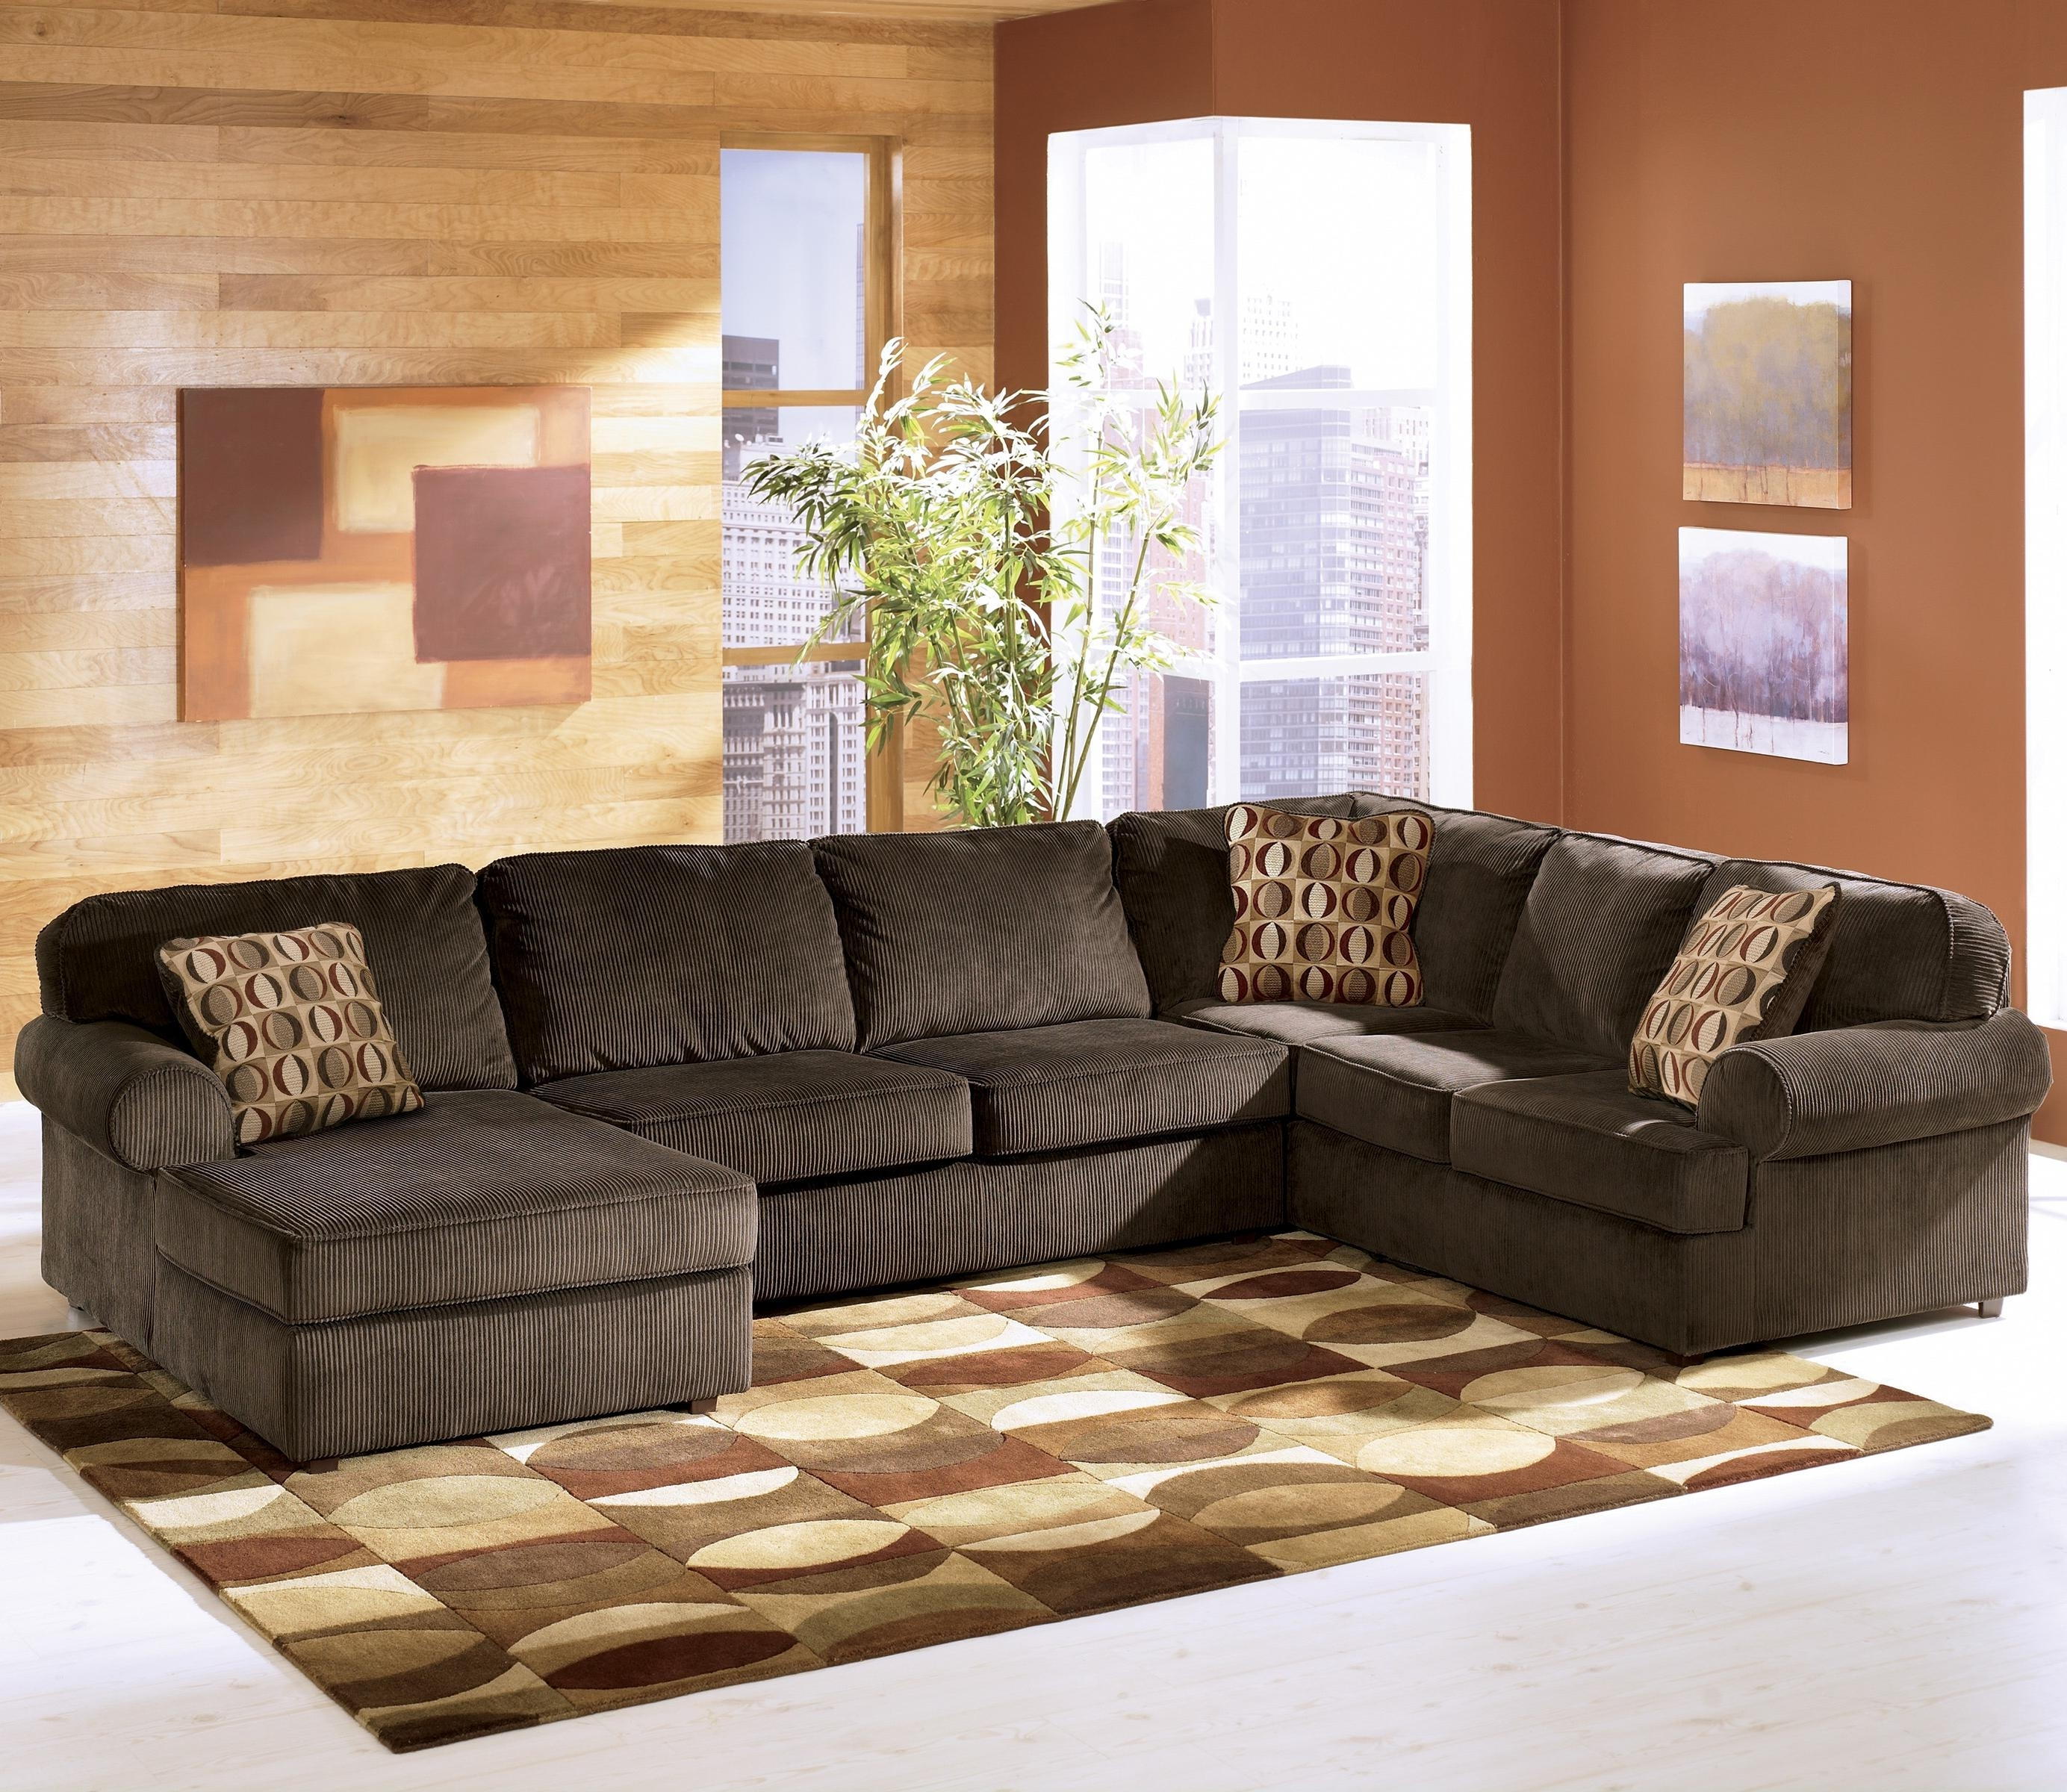 3 Piece Sectional Sofas With Chaise Regarding Widely Used Ashley Furniture Vista – Chocolate Casual 3 Piece Sectional With (View 3 of 15)